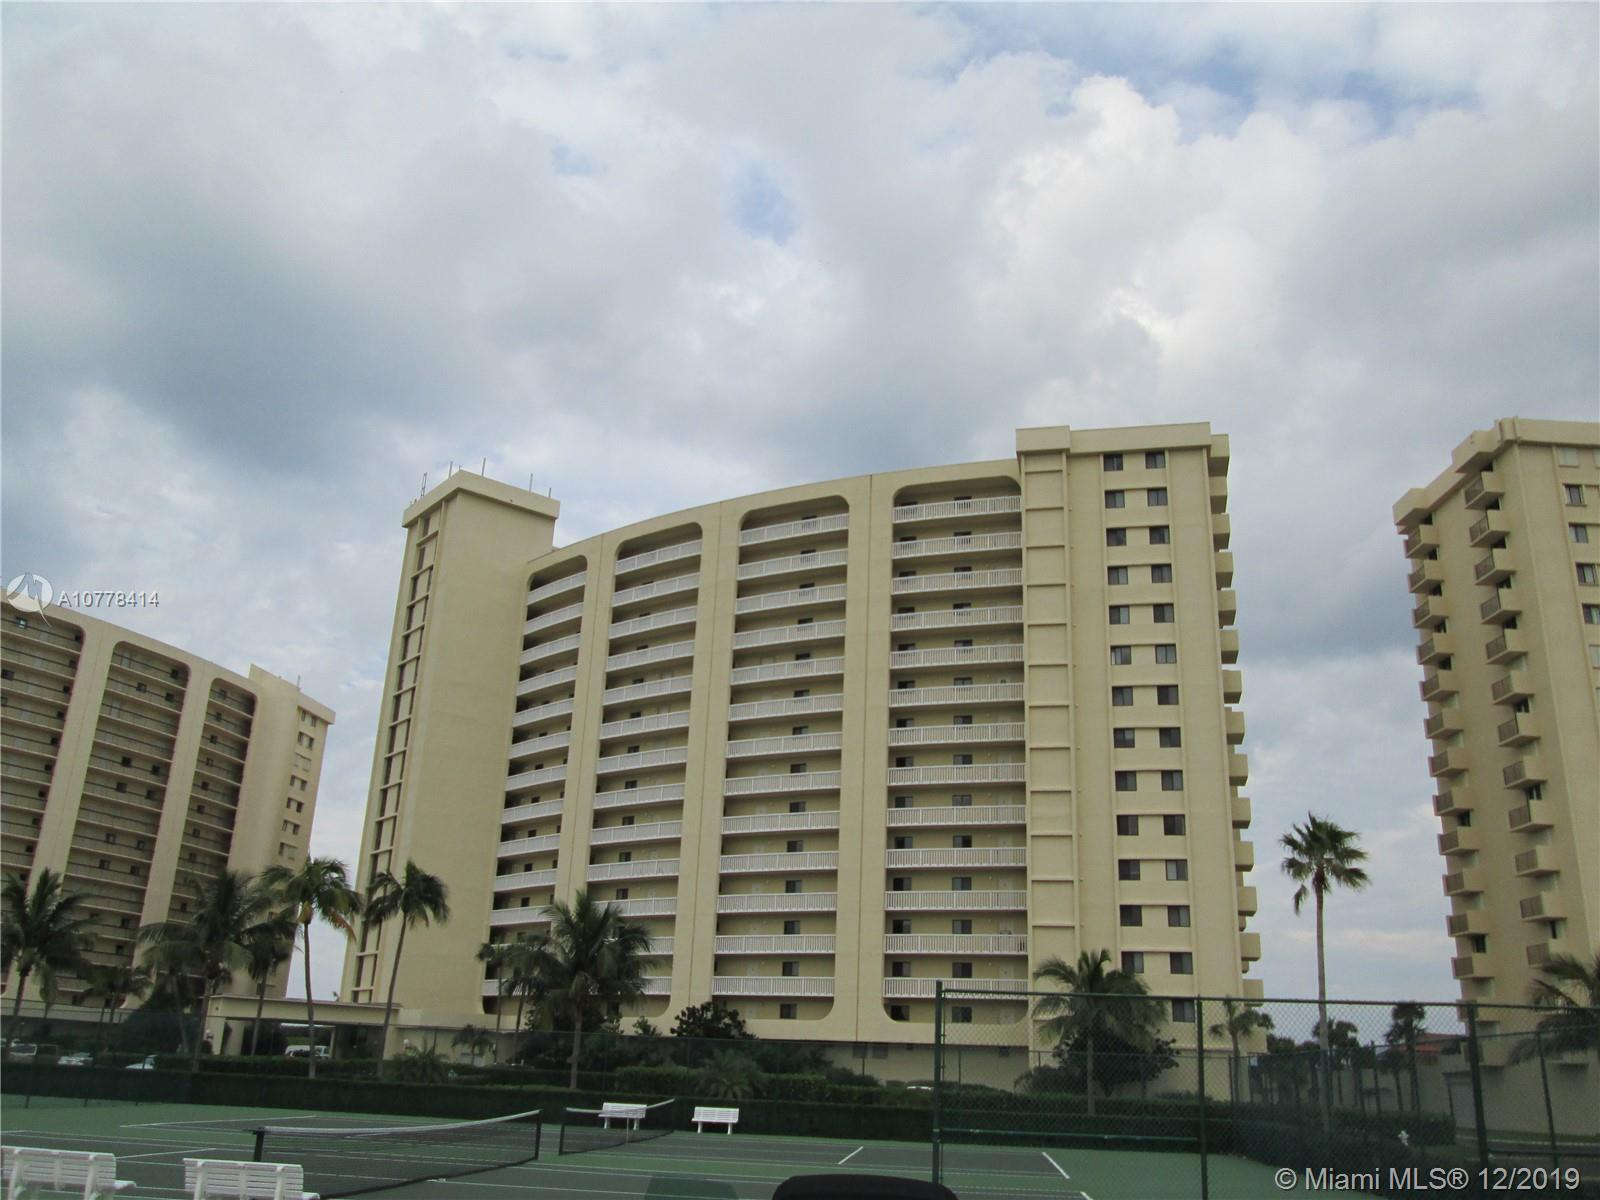 EZ TO SHOW!!! 1/2 HOUR NOTICE - CALL LISTING OFFICE FOR APPOINTMENT!!  TILE FLOORS THROUGHOUT, CUSTO